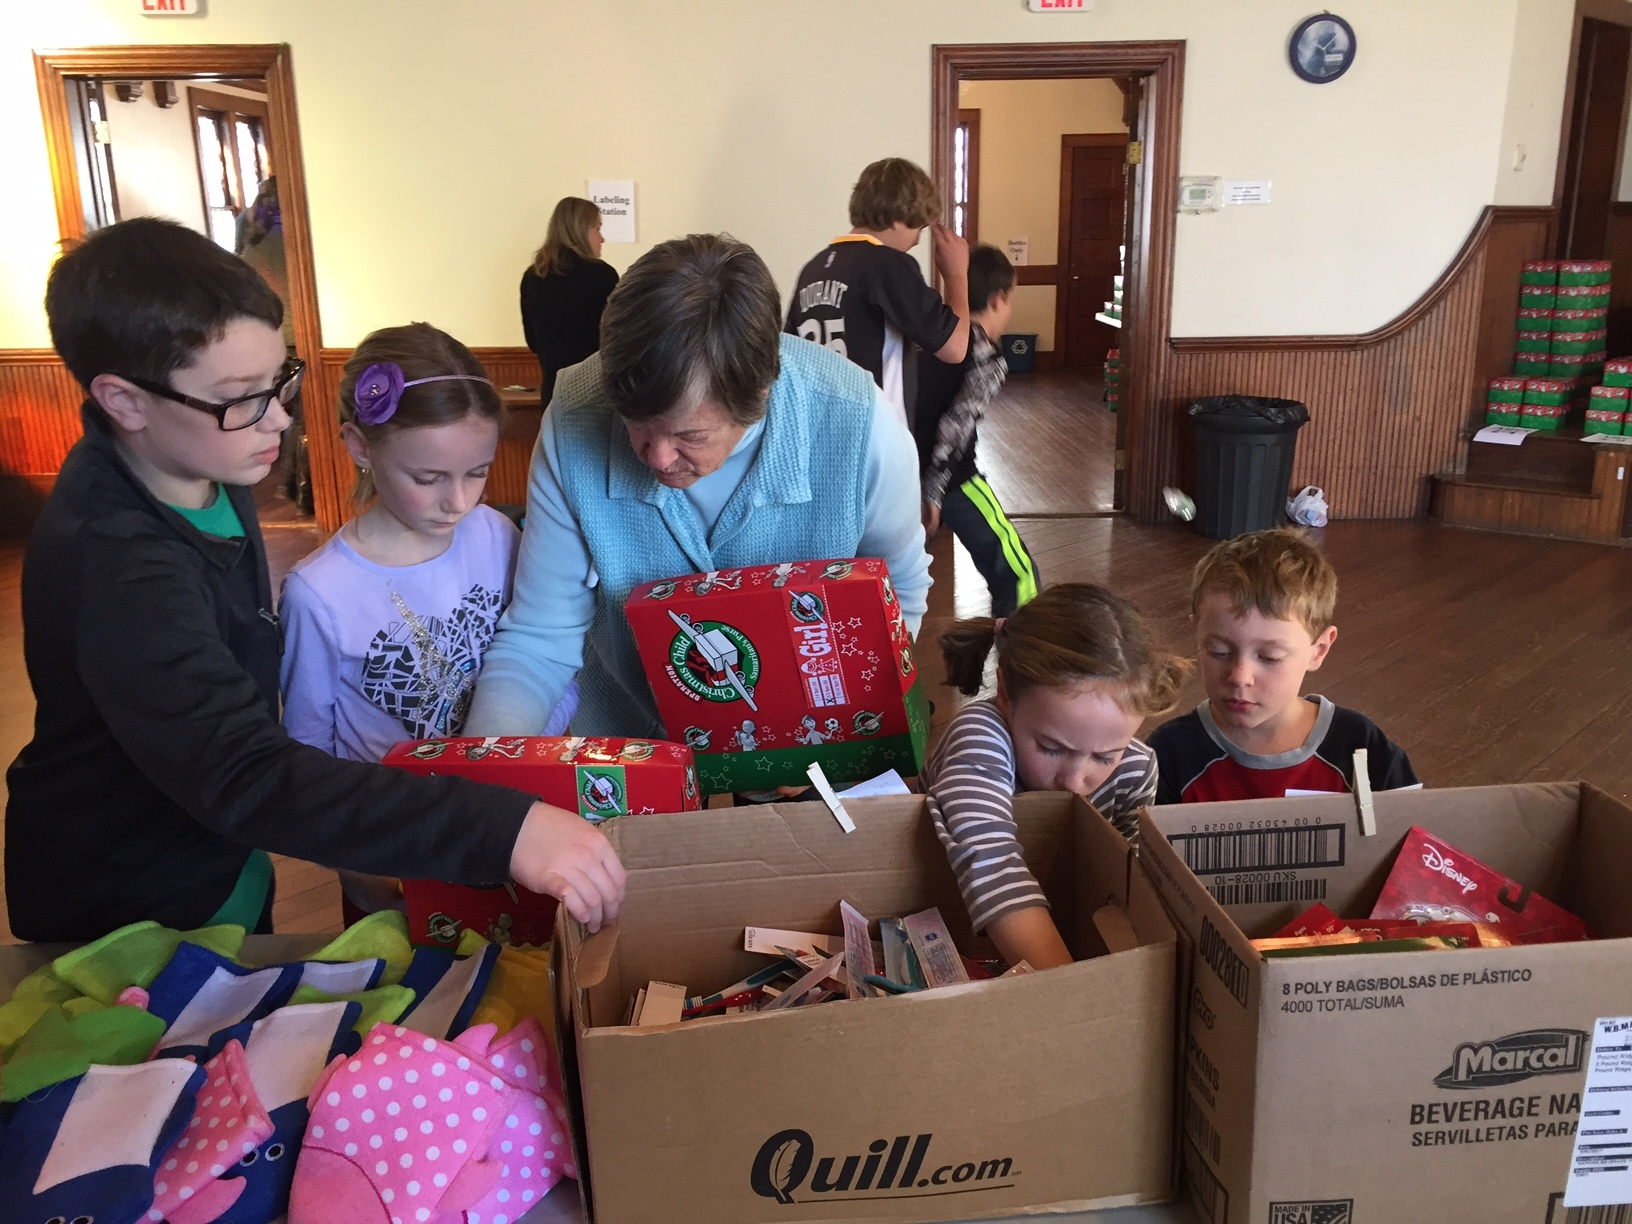 deciding what goes into the operation Christmas Child shoe boxes is a serious endeavor!